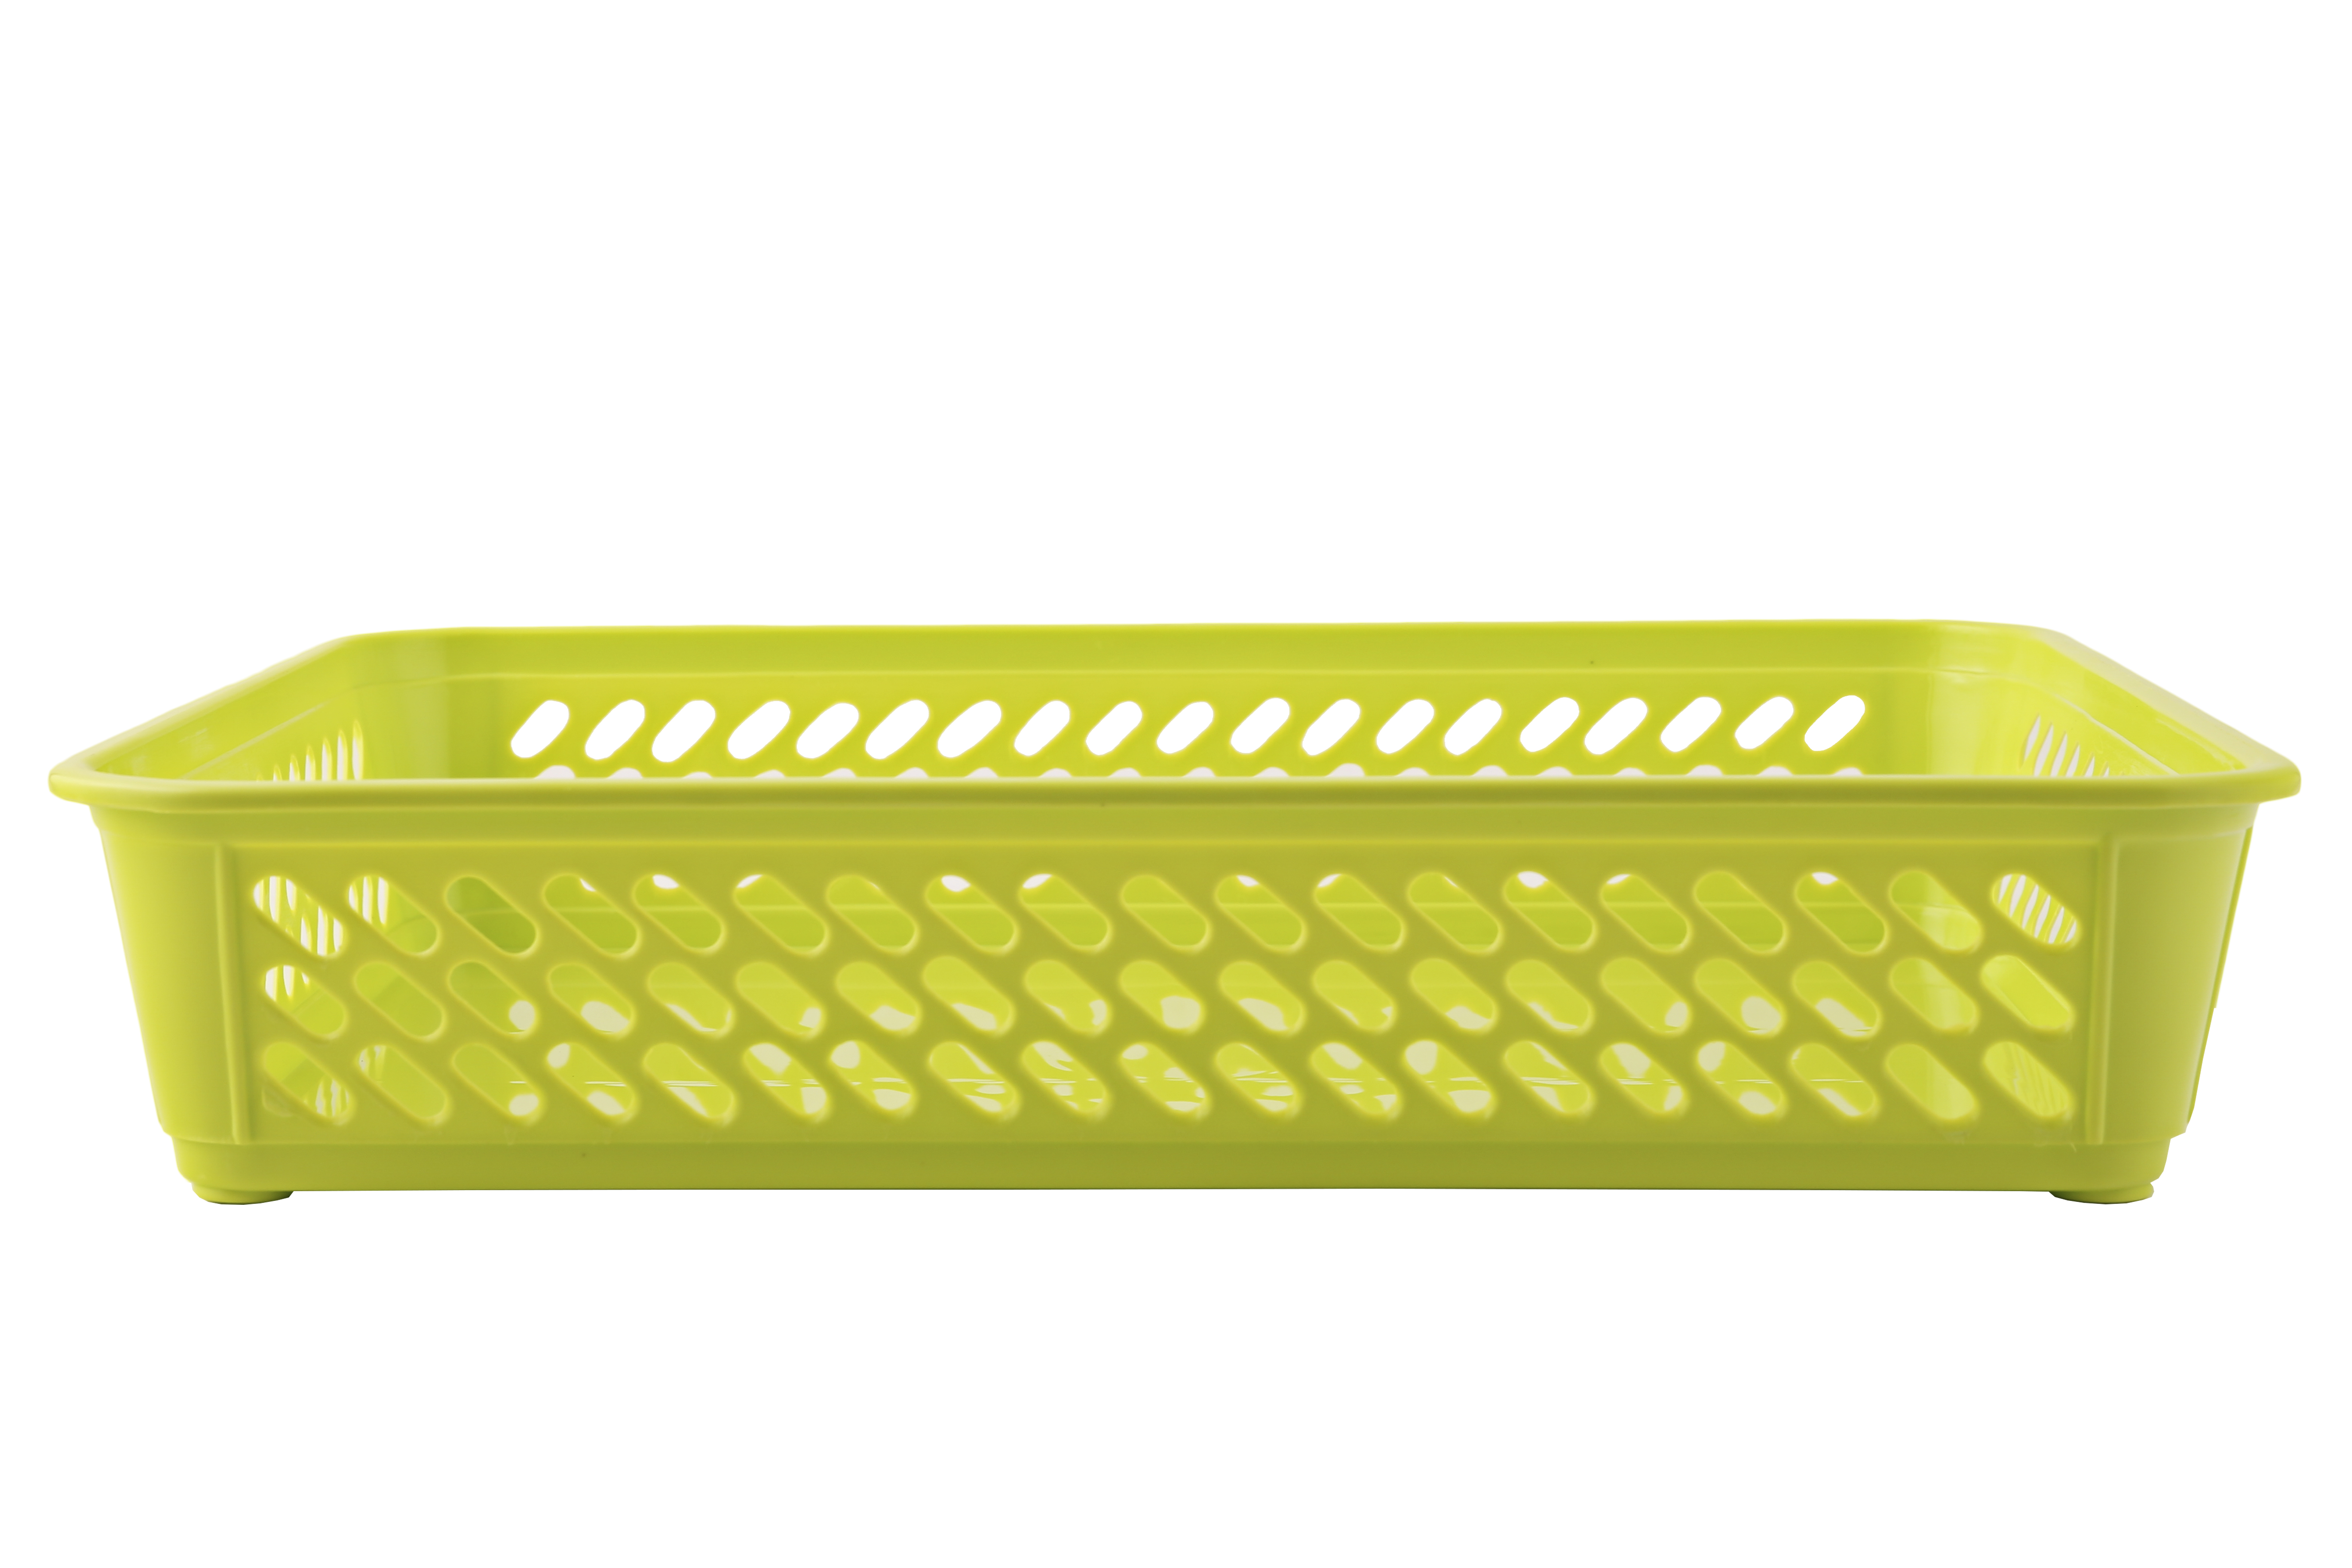 Sieve Multi Purpose Basket Green Plastic Kitchen Storage in Green Colour by Living Essence